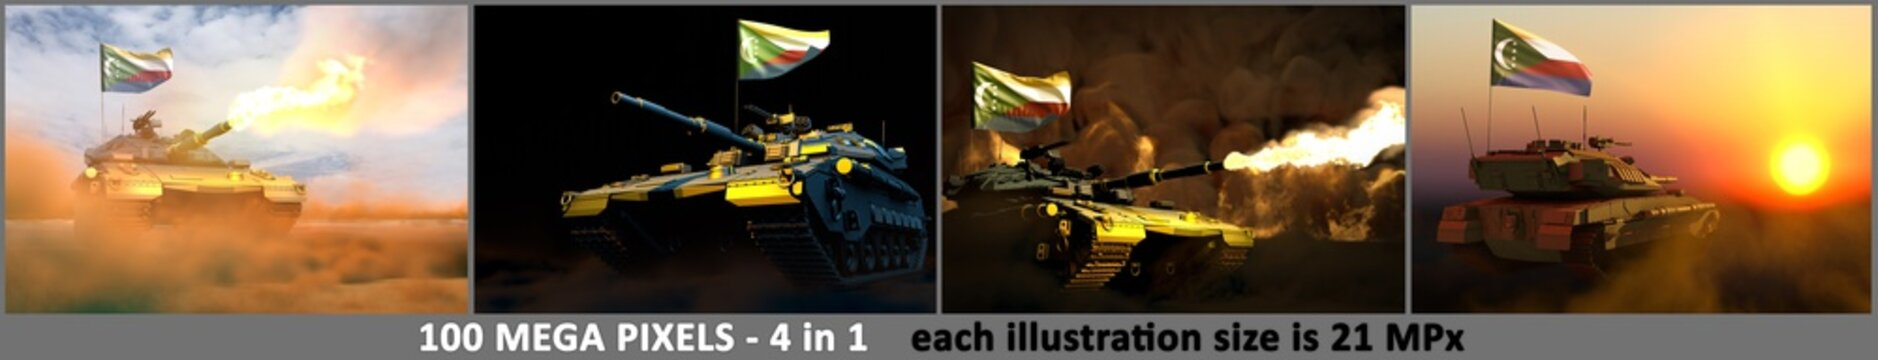 Comoros army concept - 4 high resolution images of tank with design that not exists with Comoros flag and free place for your text, military 3D Illustration